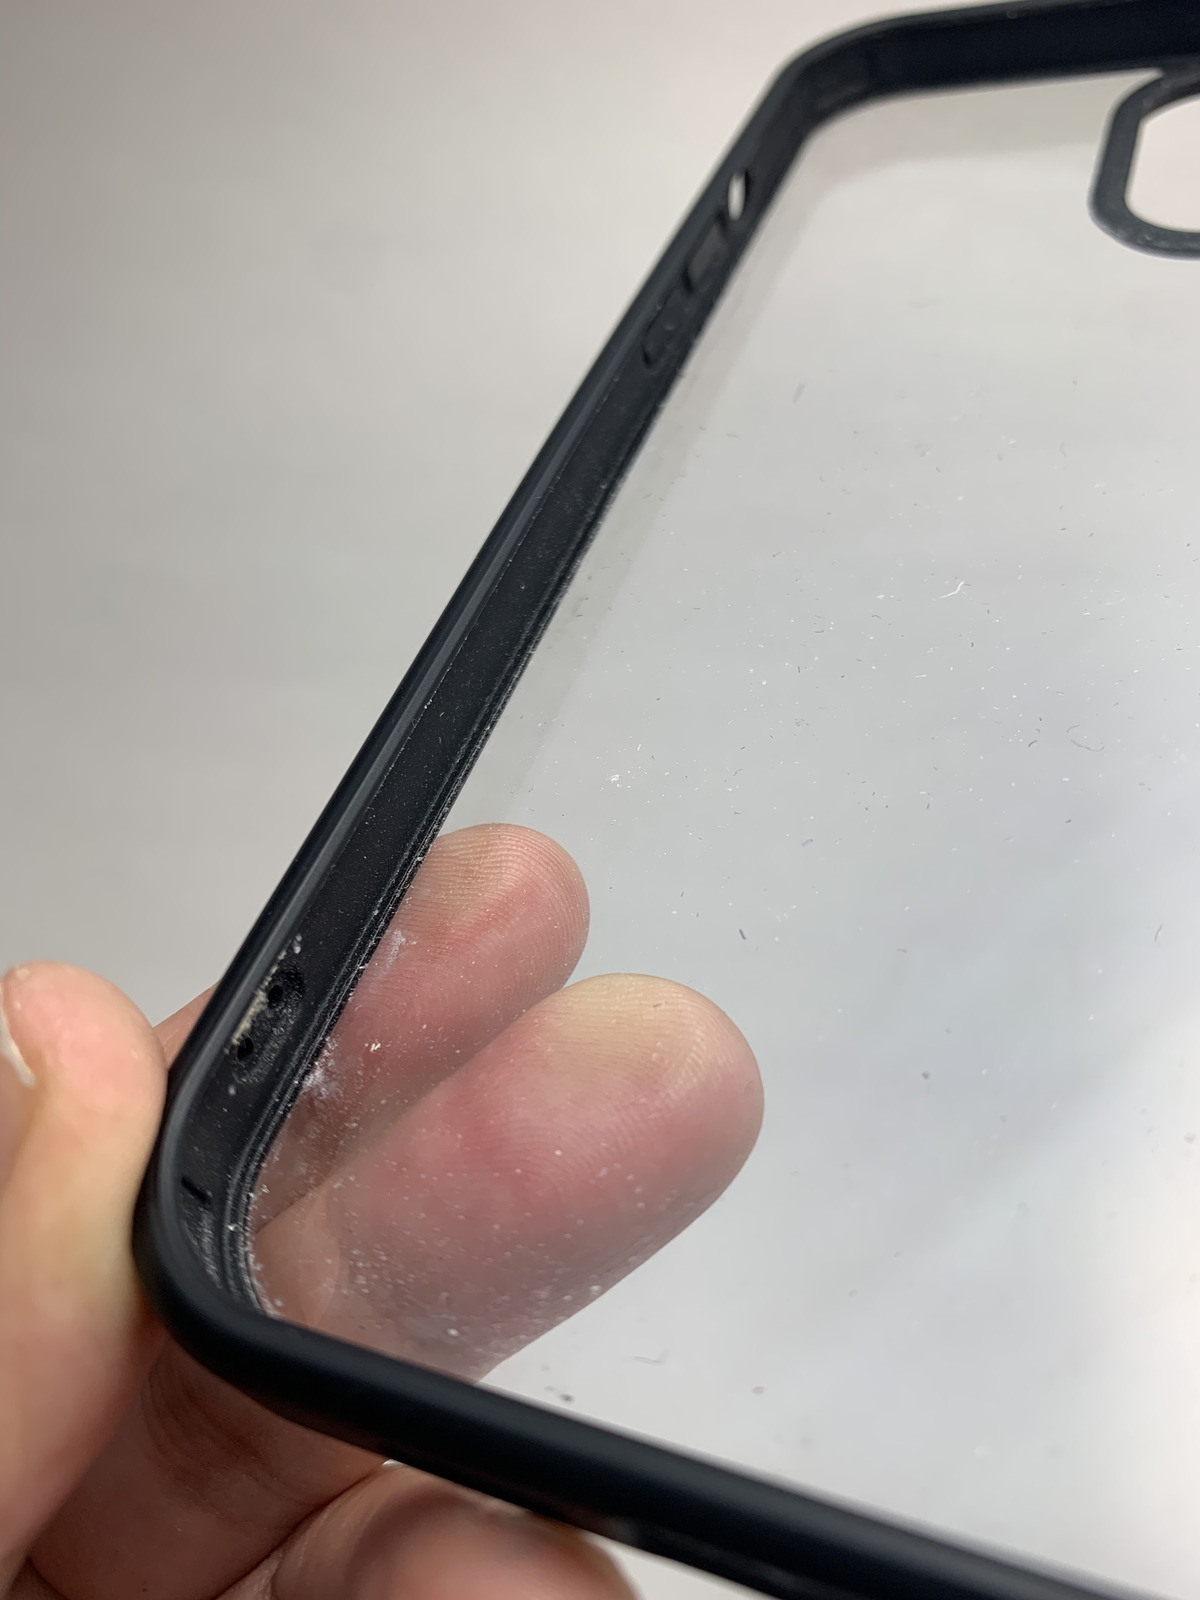 iphone12-cleaning-01-photo-059